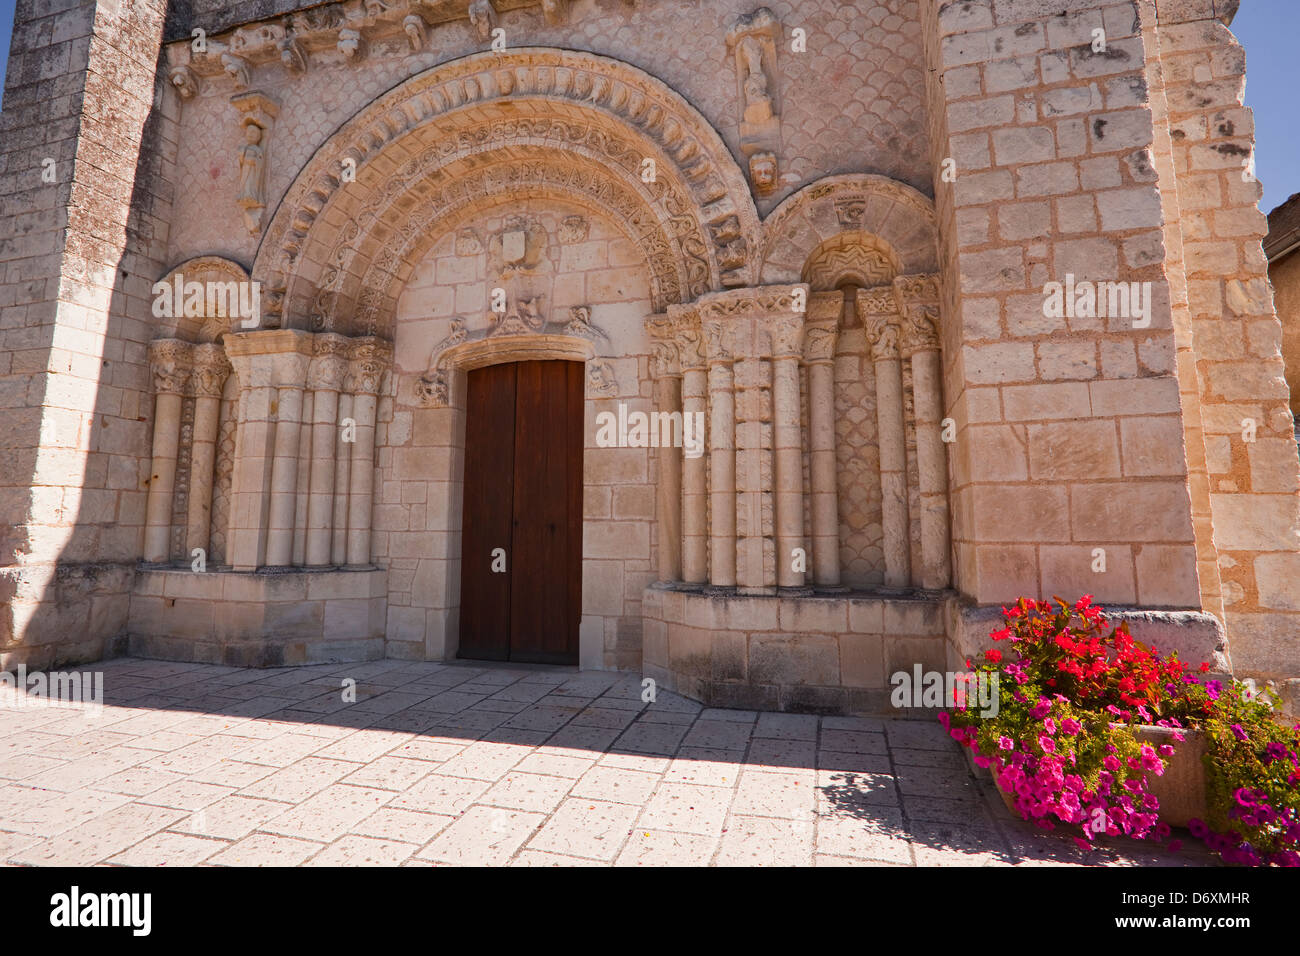 Eglise saint Pierre in the village of Parcay sur Vienne. - Stock Image